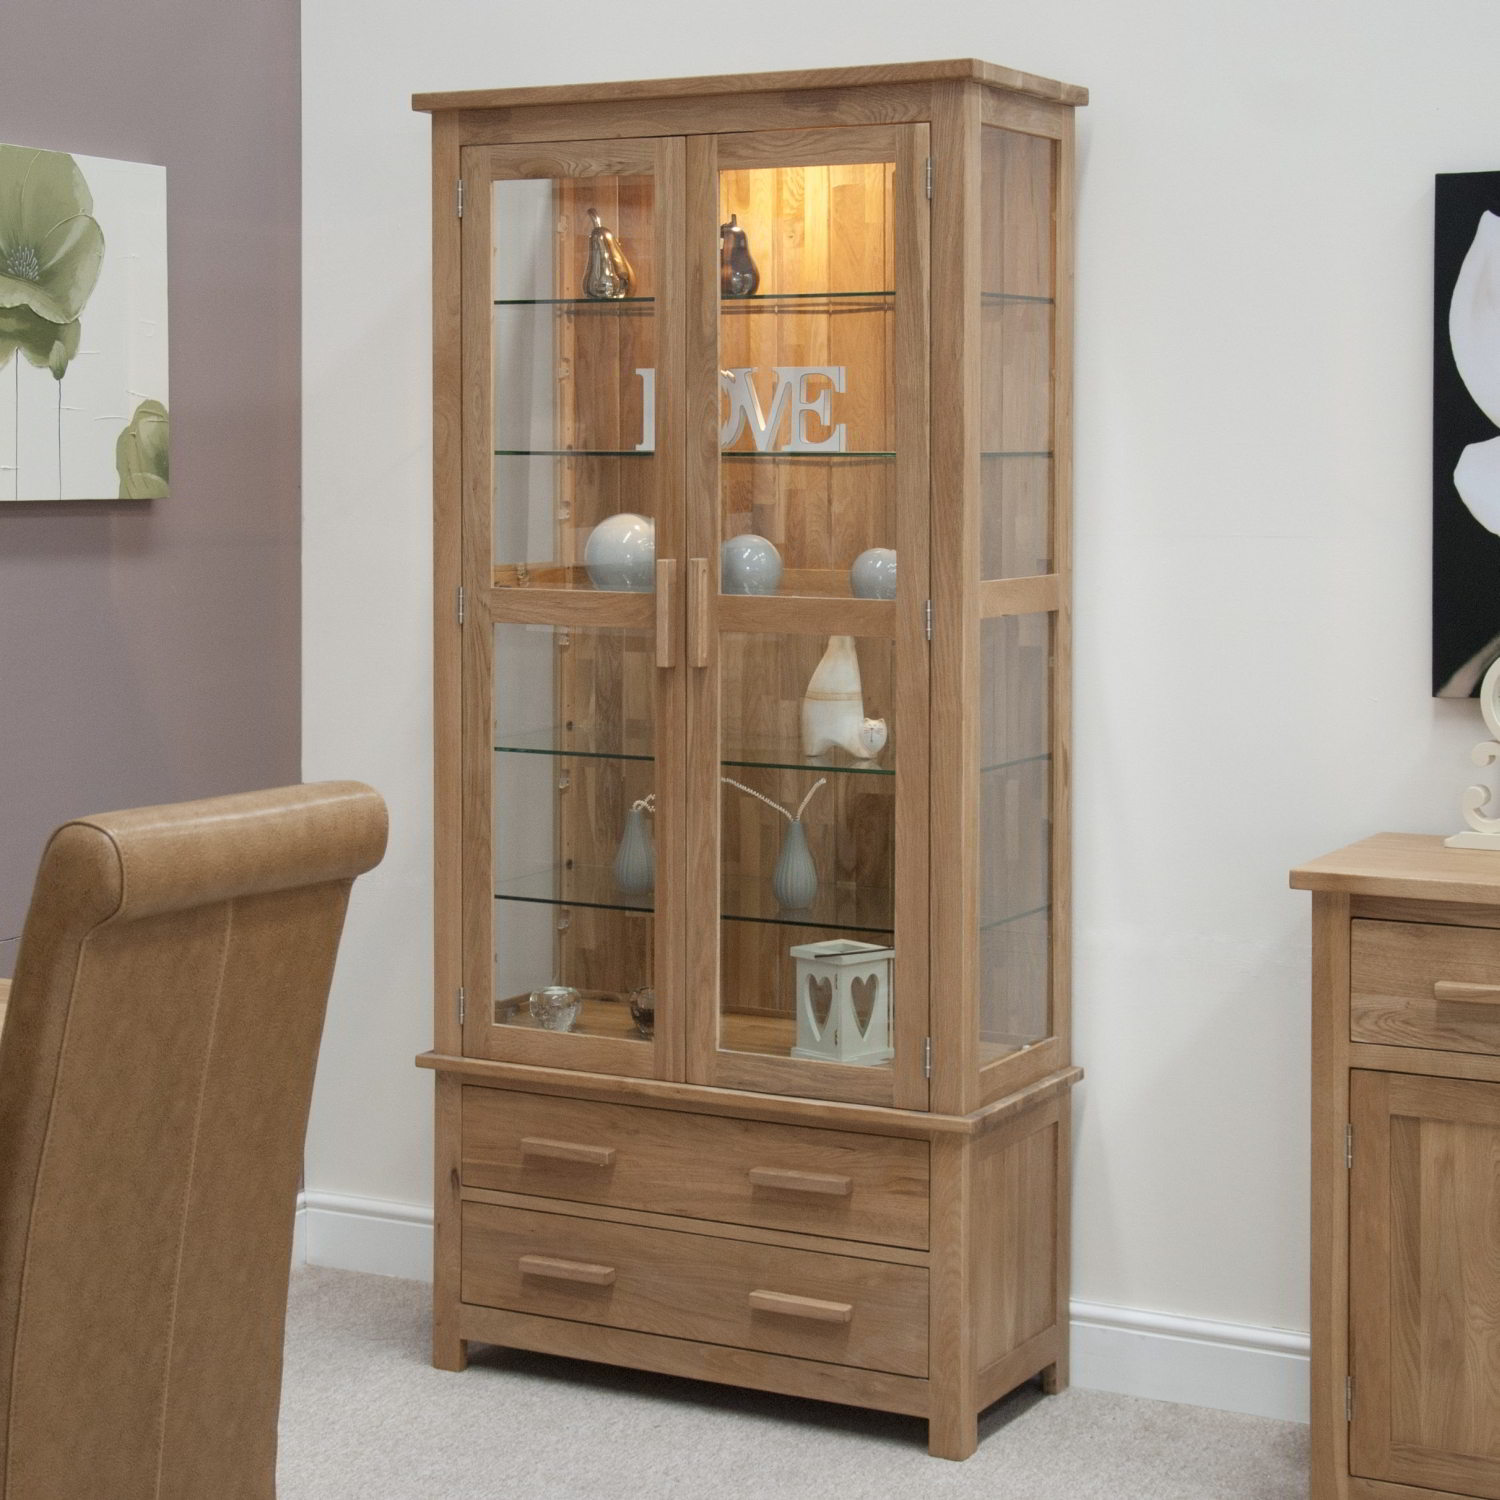 living room furniture cabinets.  Eton solid oak living room furniture glazed display cabinet cupboard Living Room Furniture Cabinets Modern House